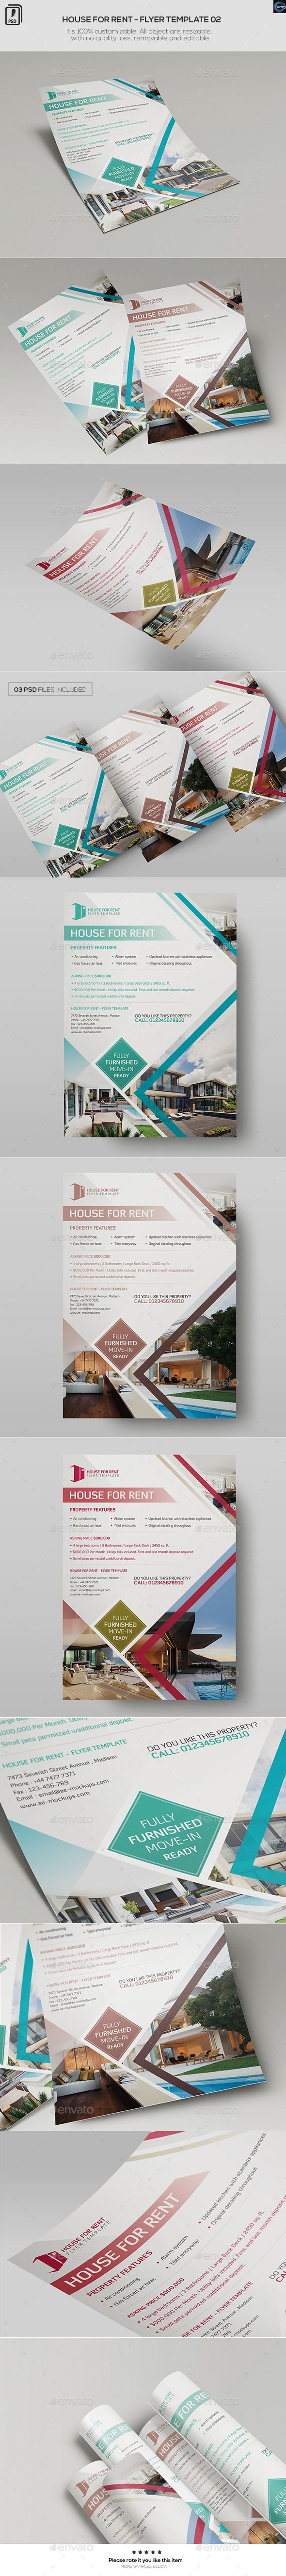 House For Rent - Flyer Template 02 | Flyer template, Renting and ...